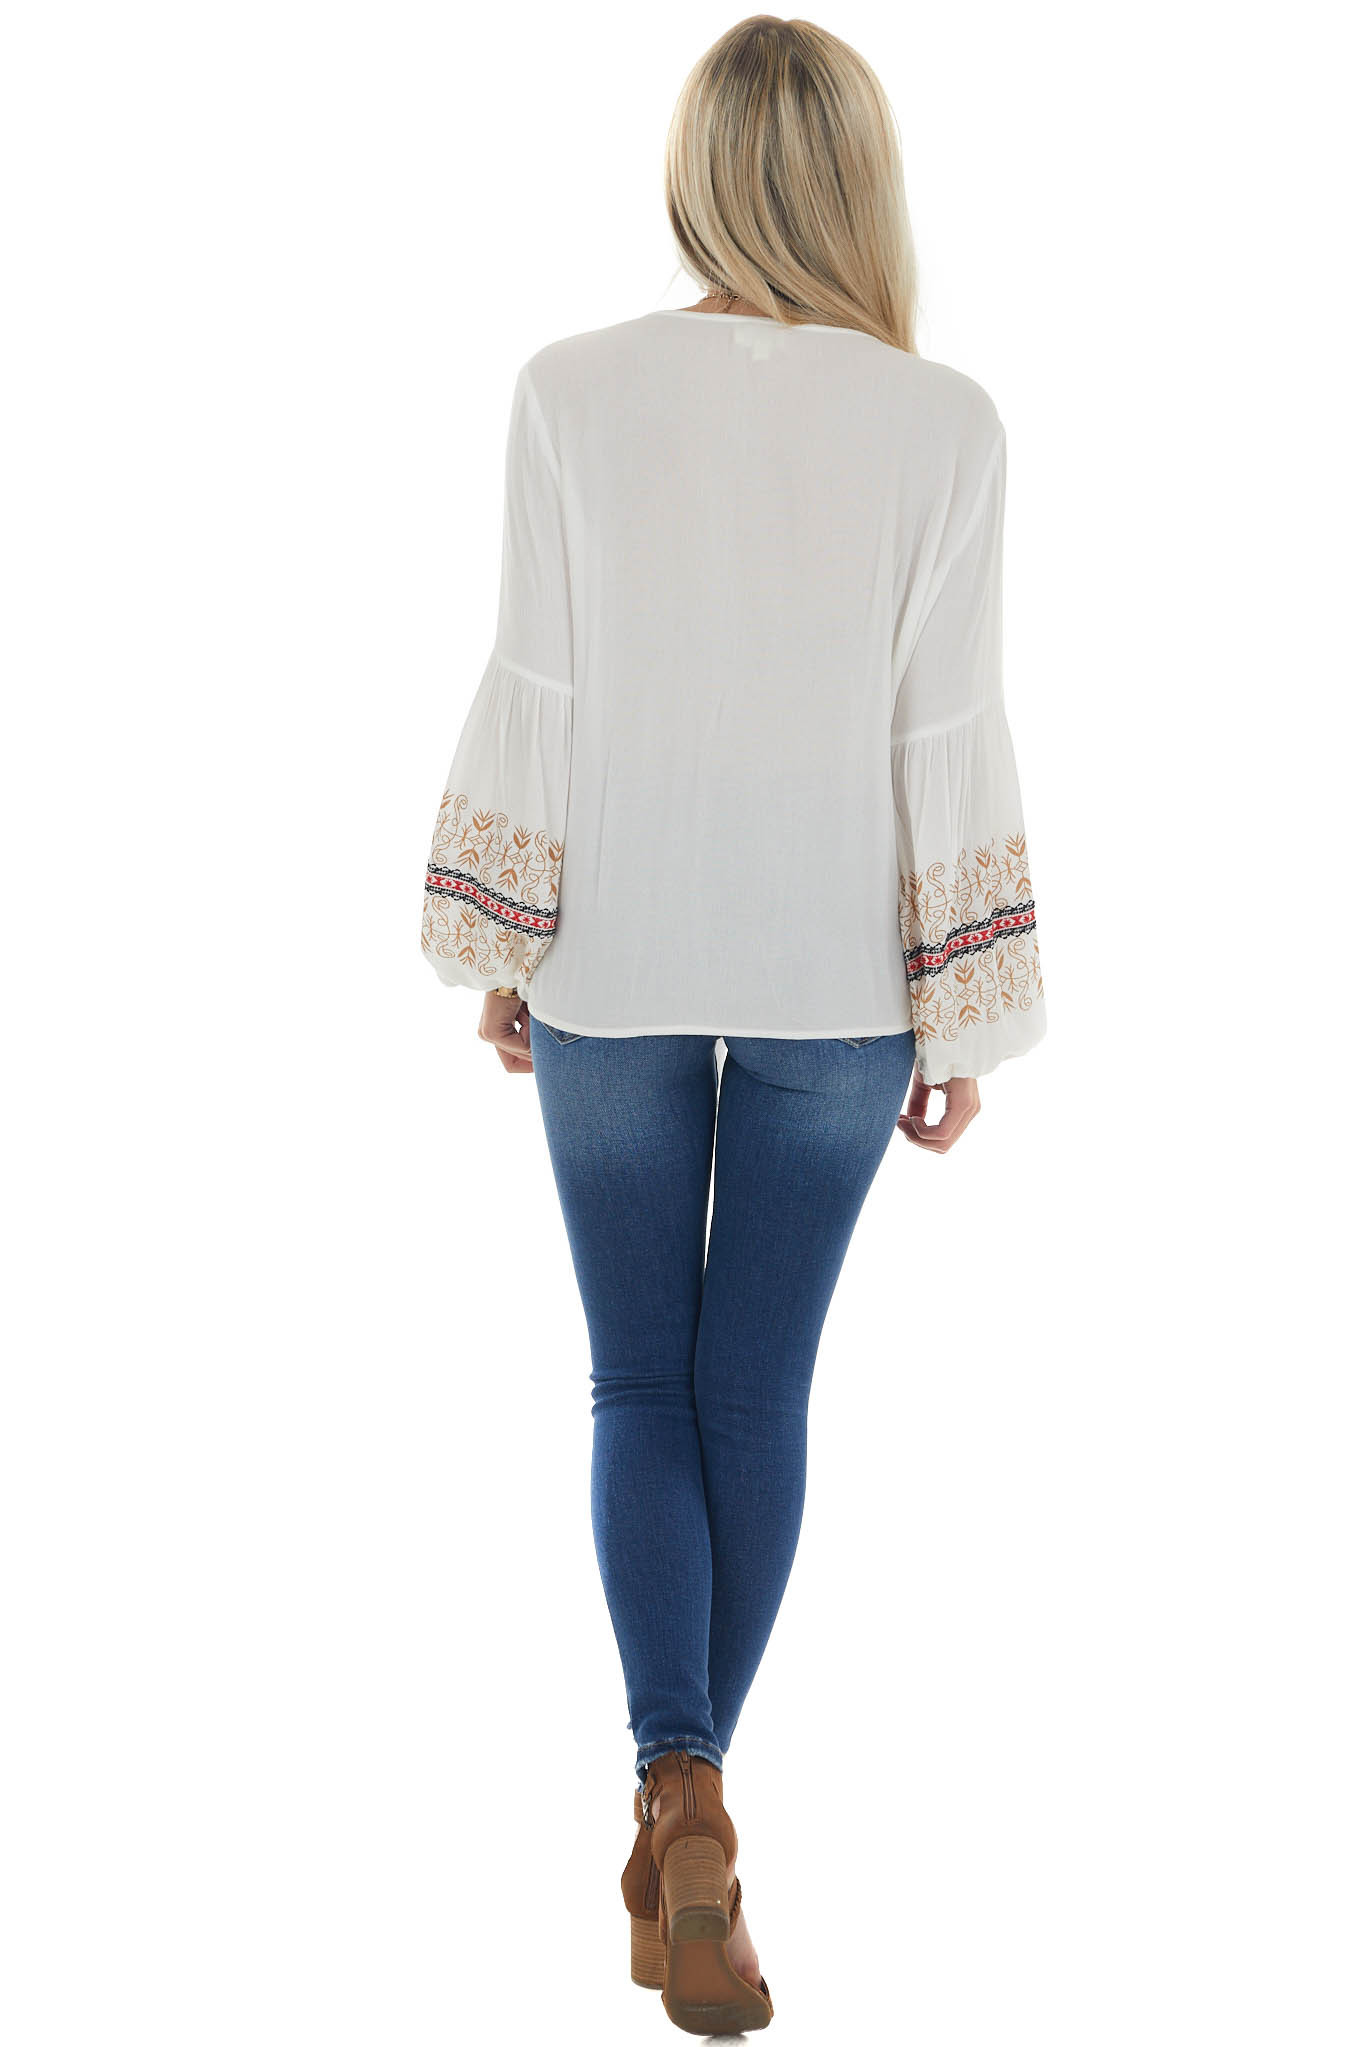 Ivory Printed Sleeve Detail Top with Front Tie